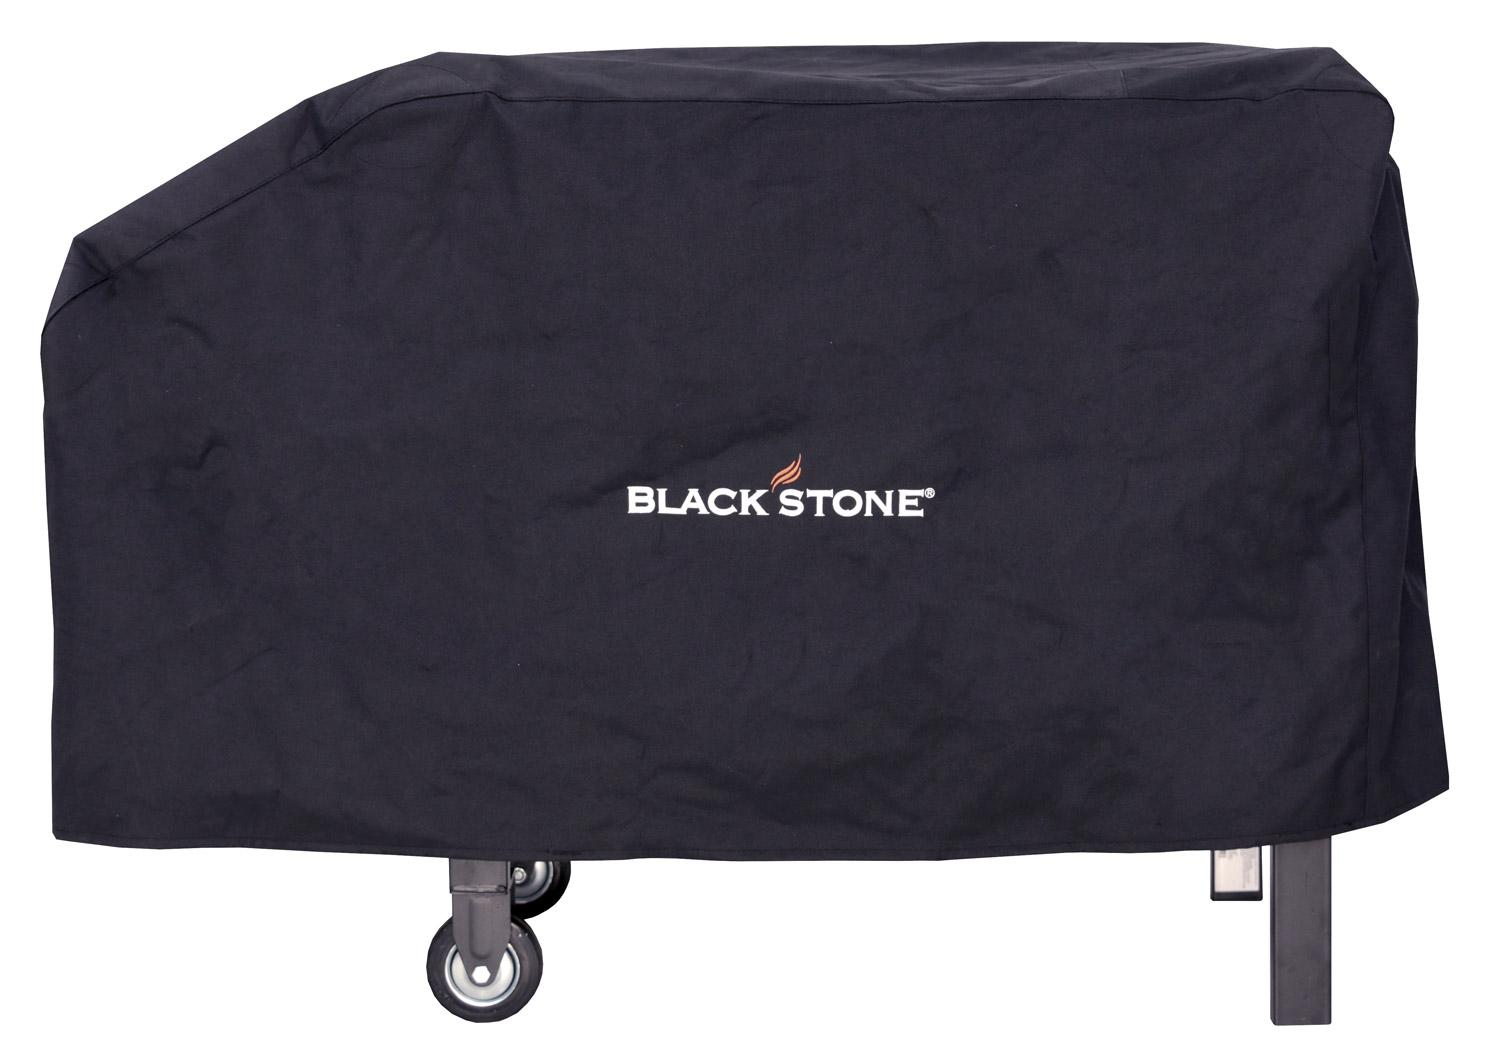 Amazon.com : Blackstone Signature Griddle Accessories - 36 Inch ...